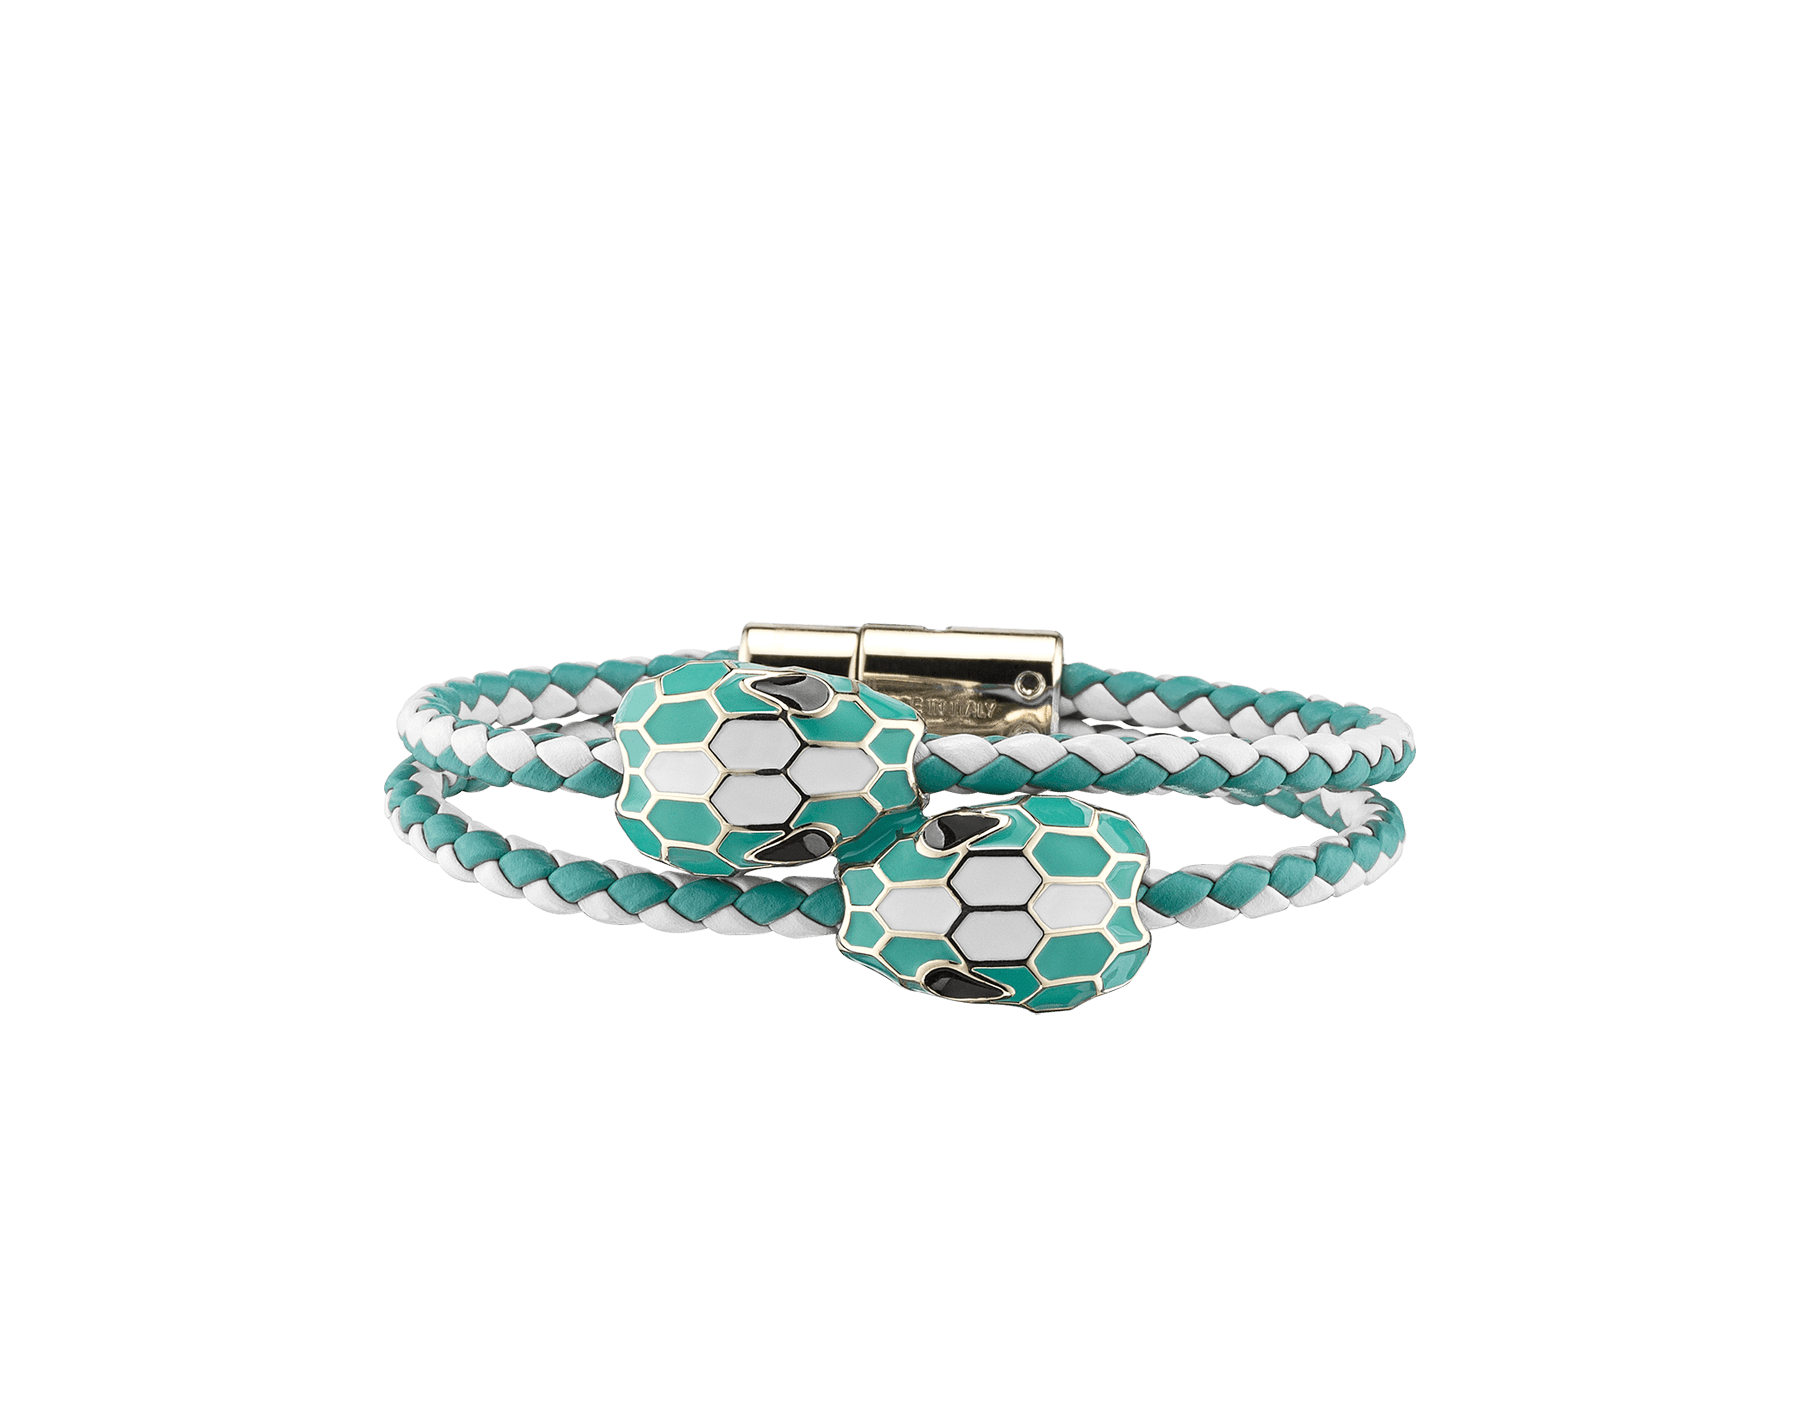 Serpenti Forever double braid bracelet in white agate and arctic jade woven calf leather with a double snakehead décor in white agate and arctic jade enamel. NewDoubleBraid-WCL-WAAJ image 1